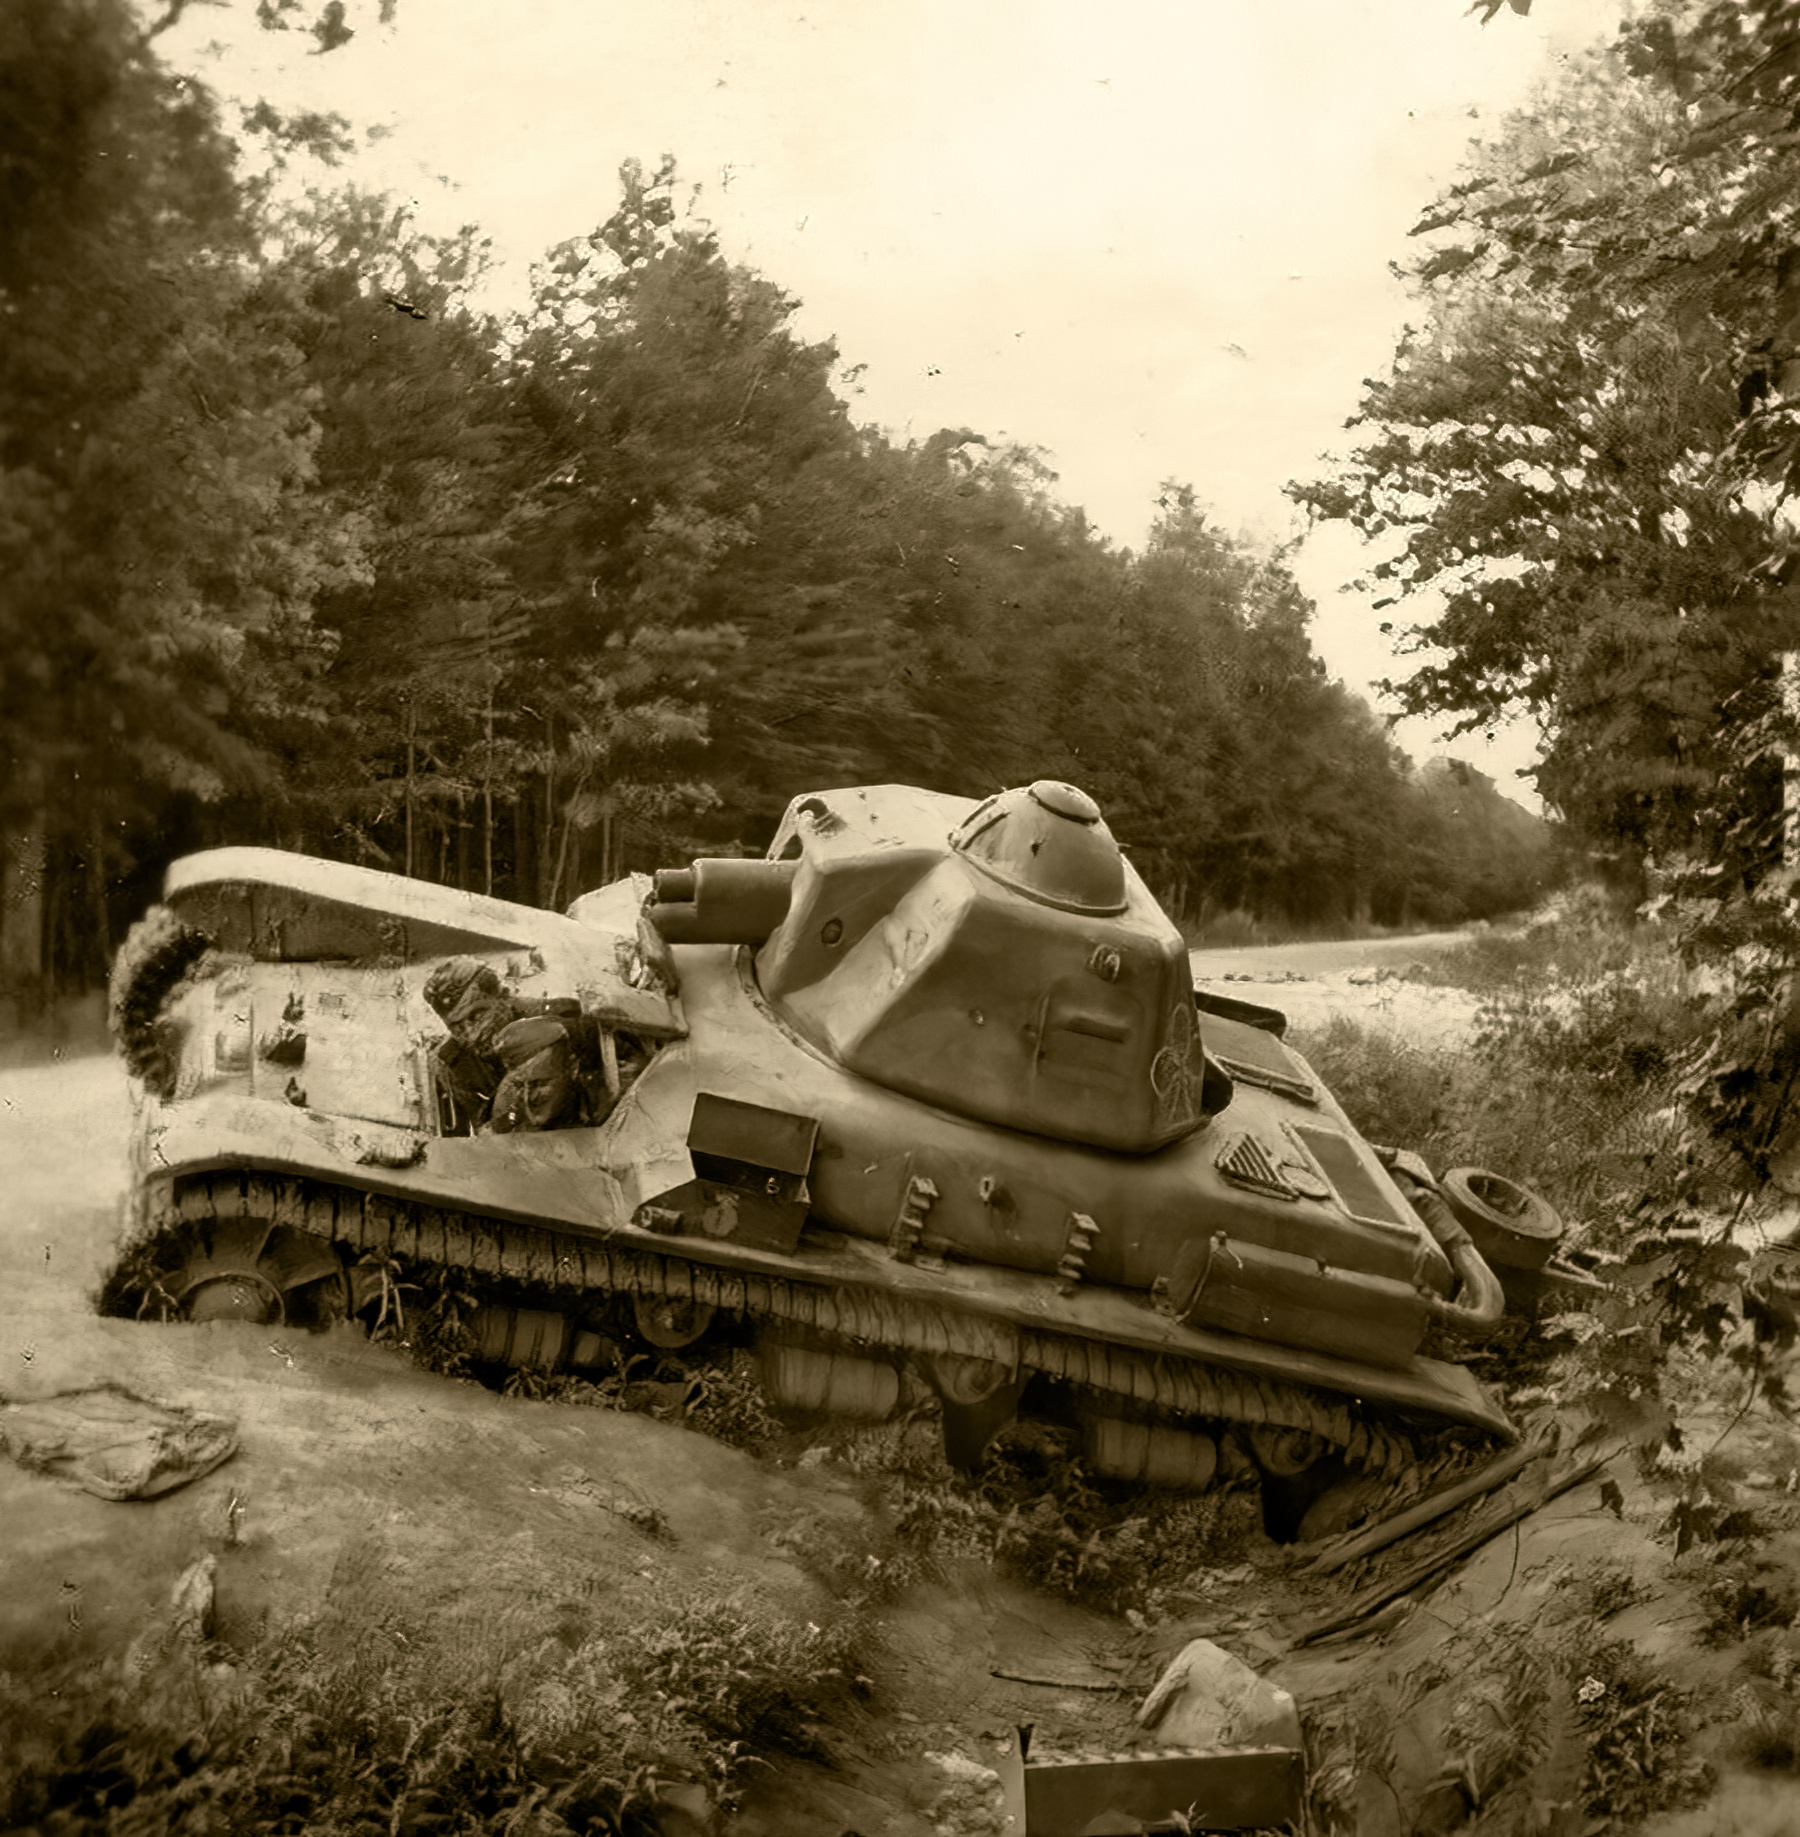 French Army Renault R35 support tank abandoned battle of France 1940 ebay 01